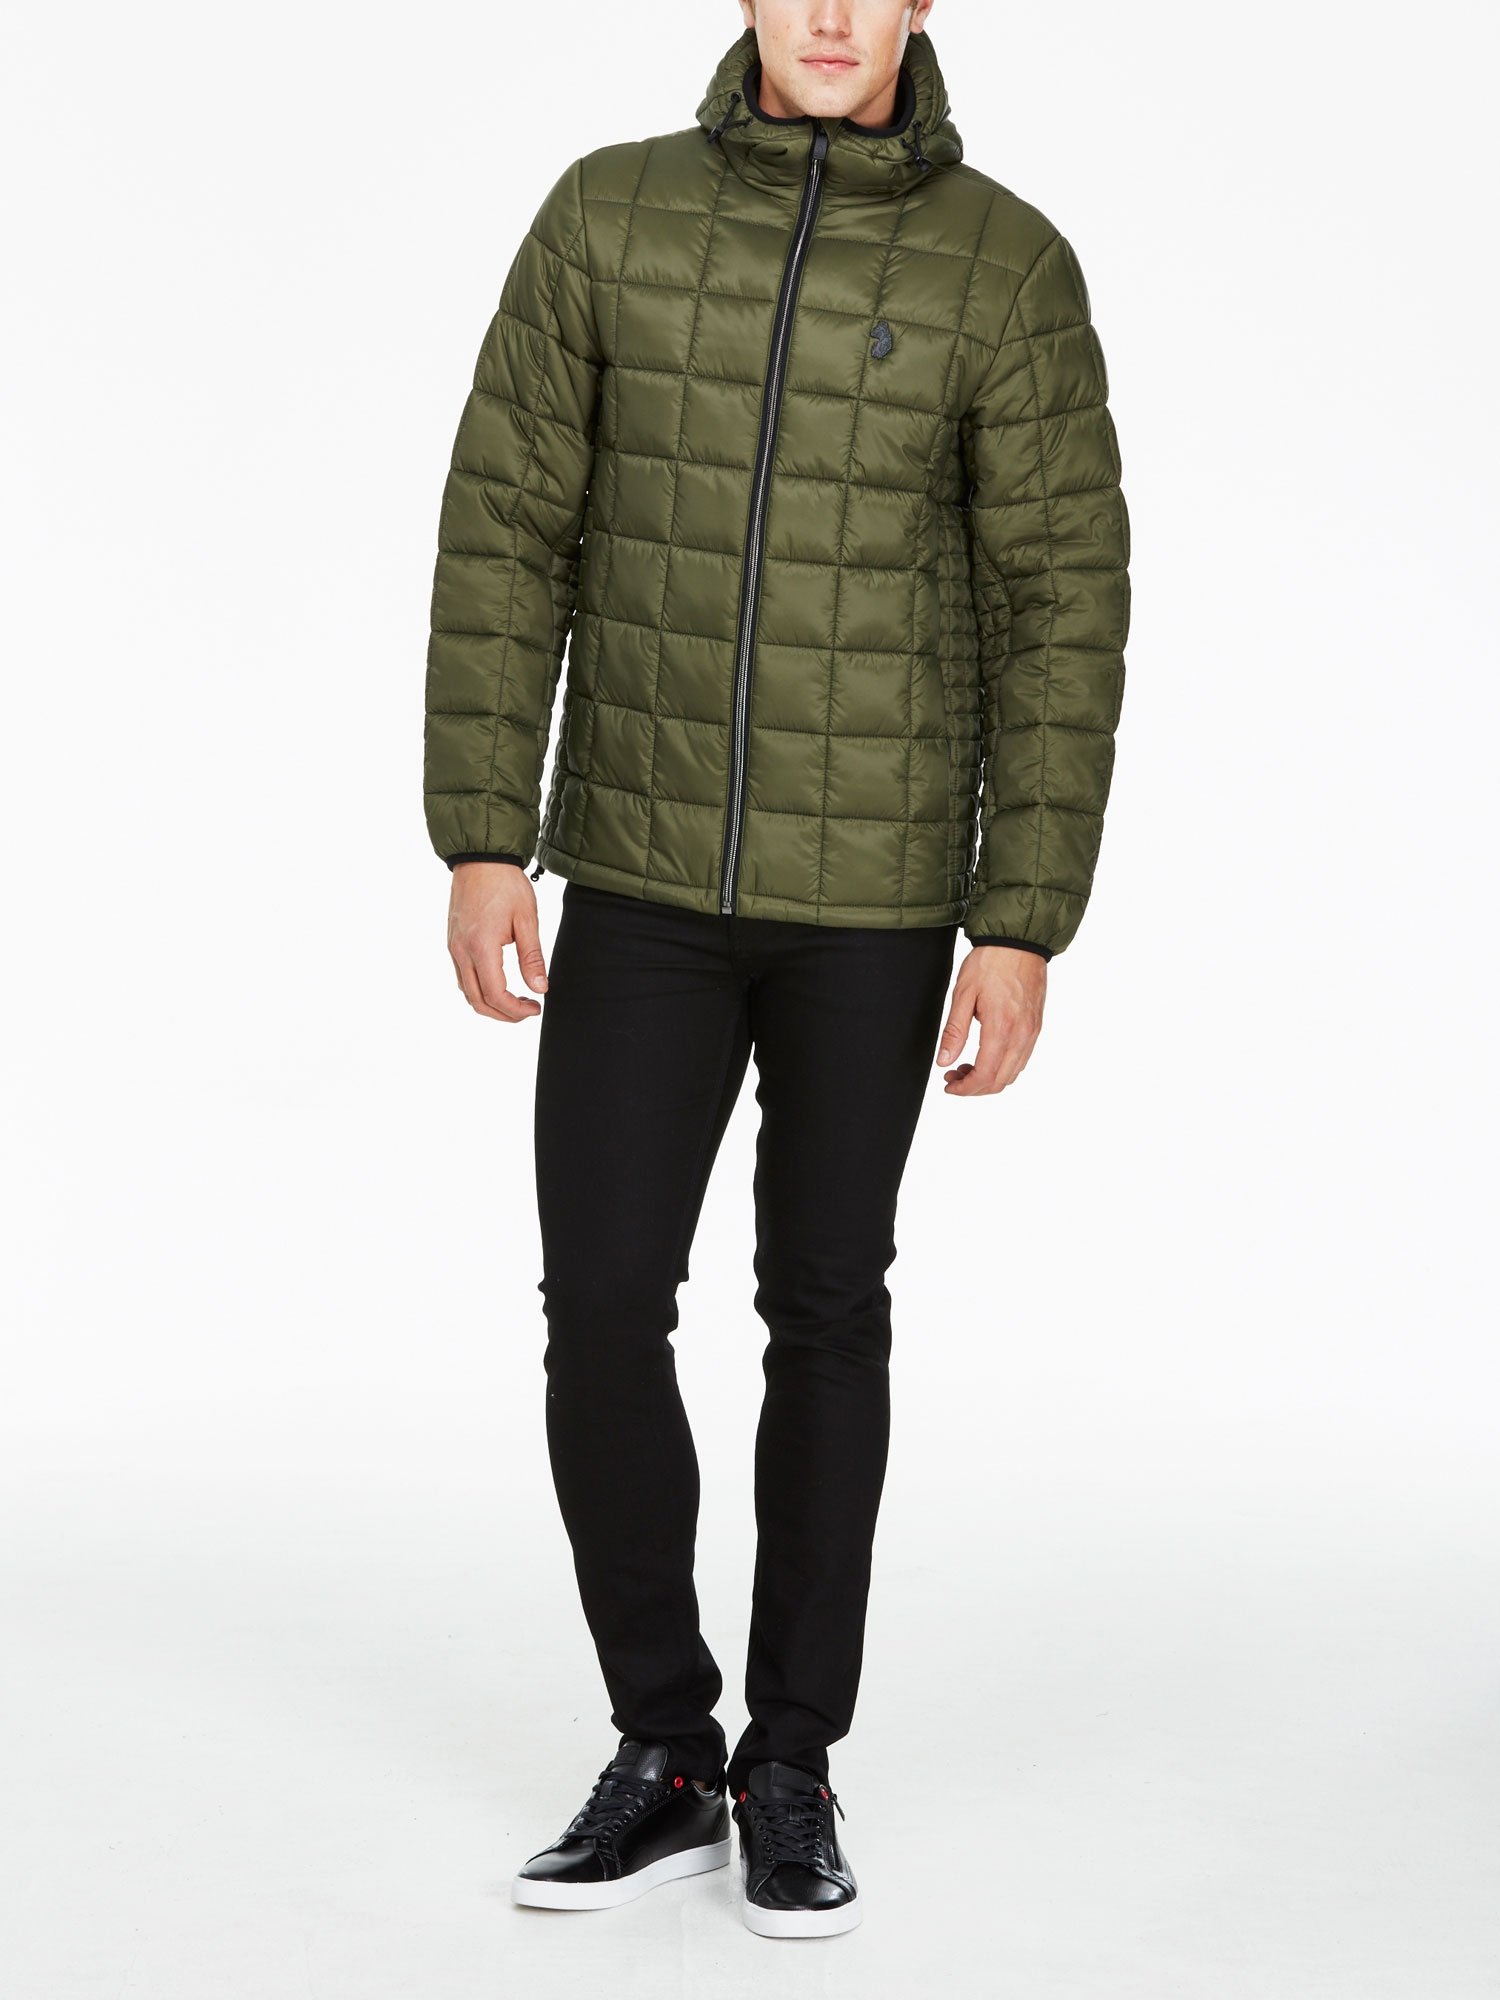 Luke 1977 Mens Southy Zip Through Quilted Lightweight Hooded Jacket Polyester